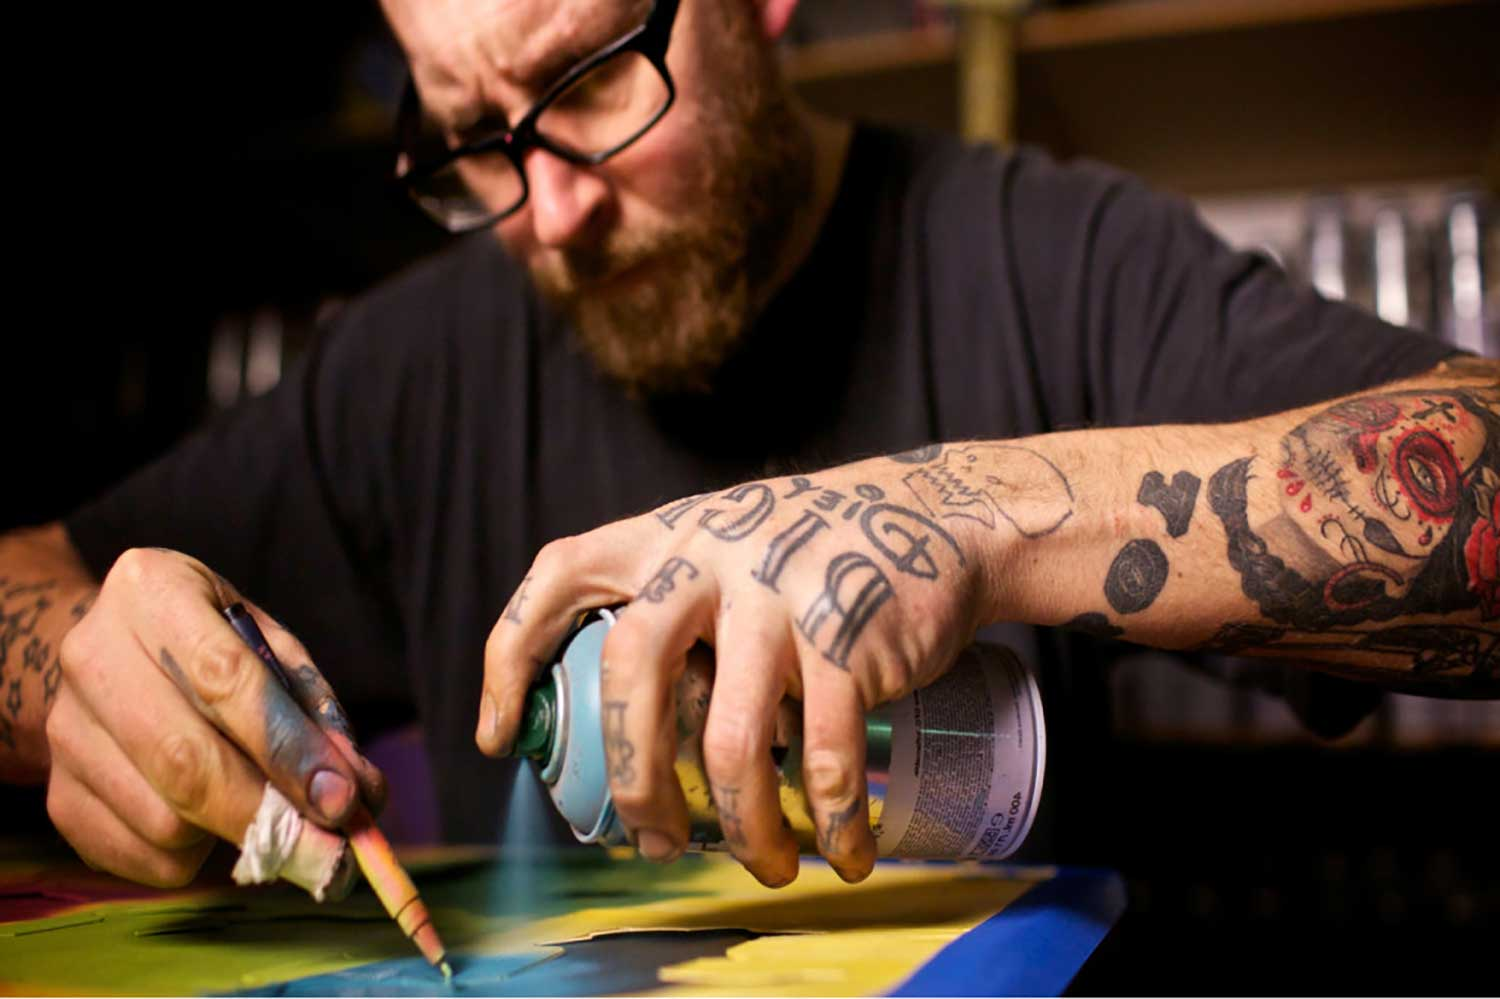 a man in glasses spraying colour on paper